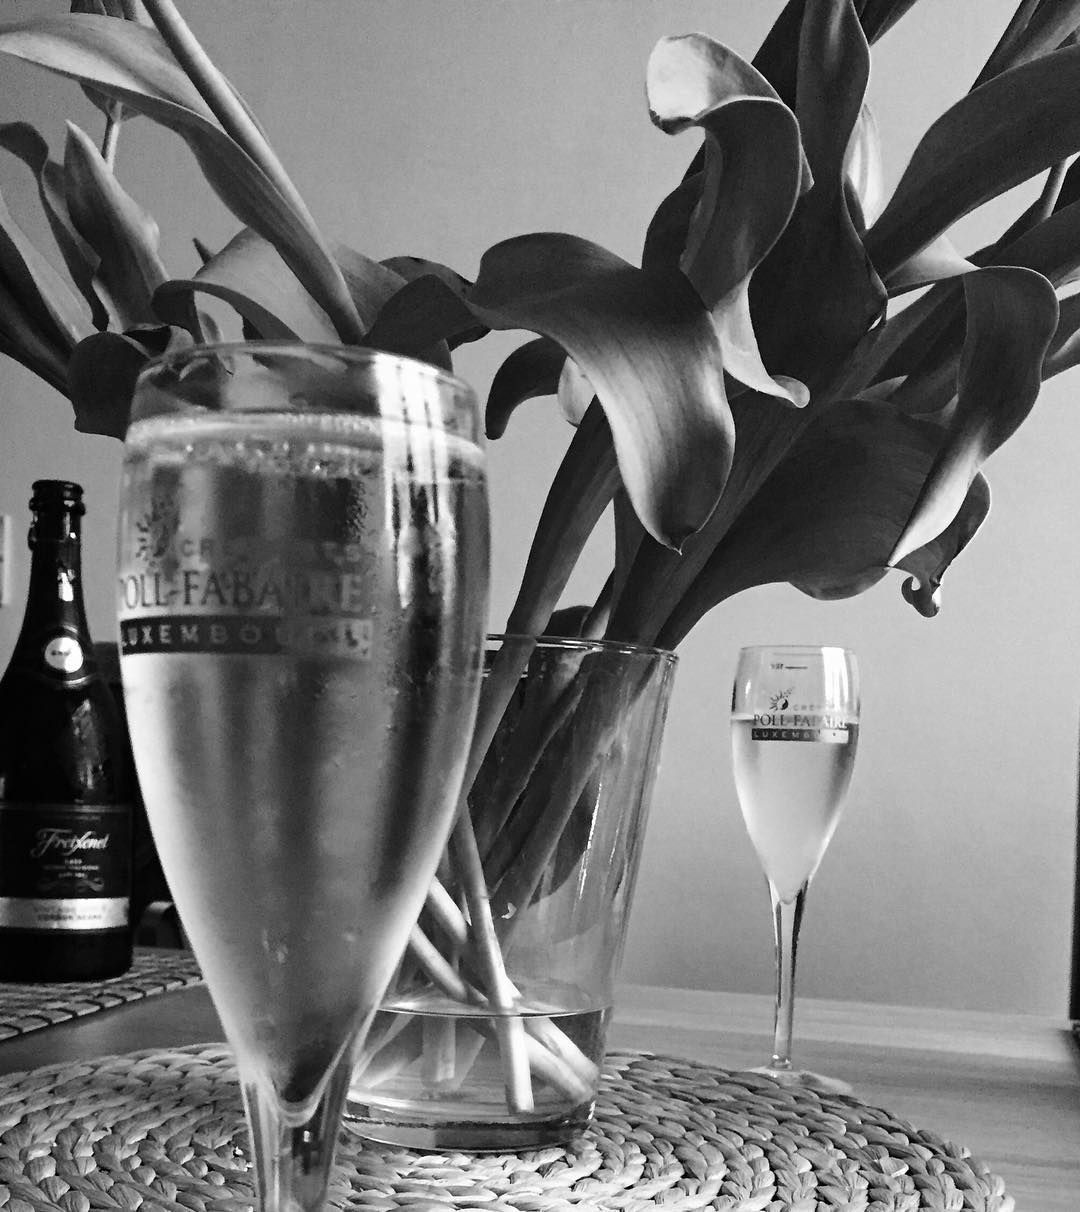 Life is a beautiful mystery #sparklingtuesday #blackandwhite #crémants #babbles #photoshoot #howdoyouseethings by osavenko